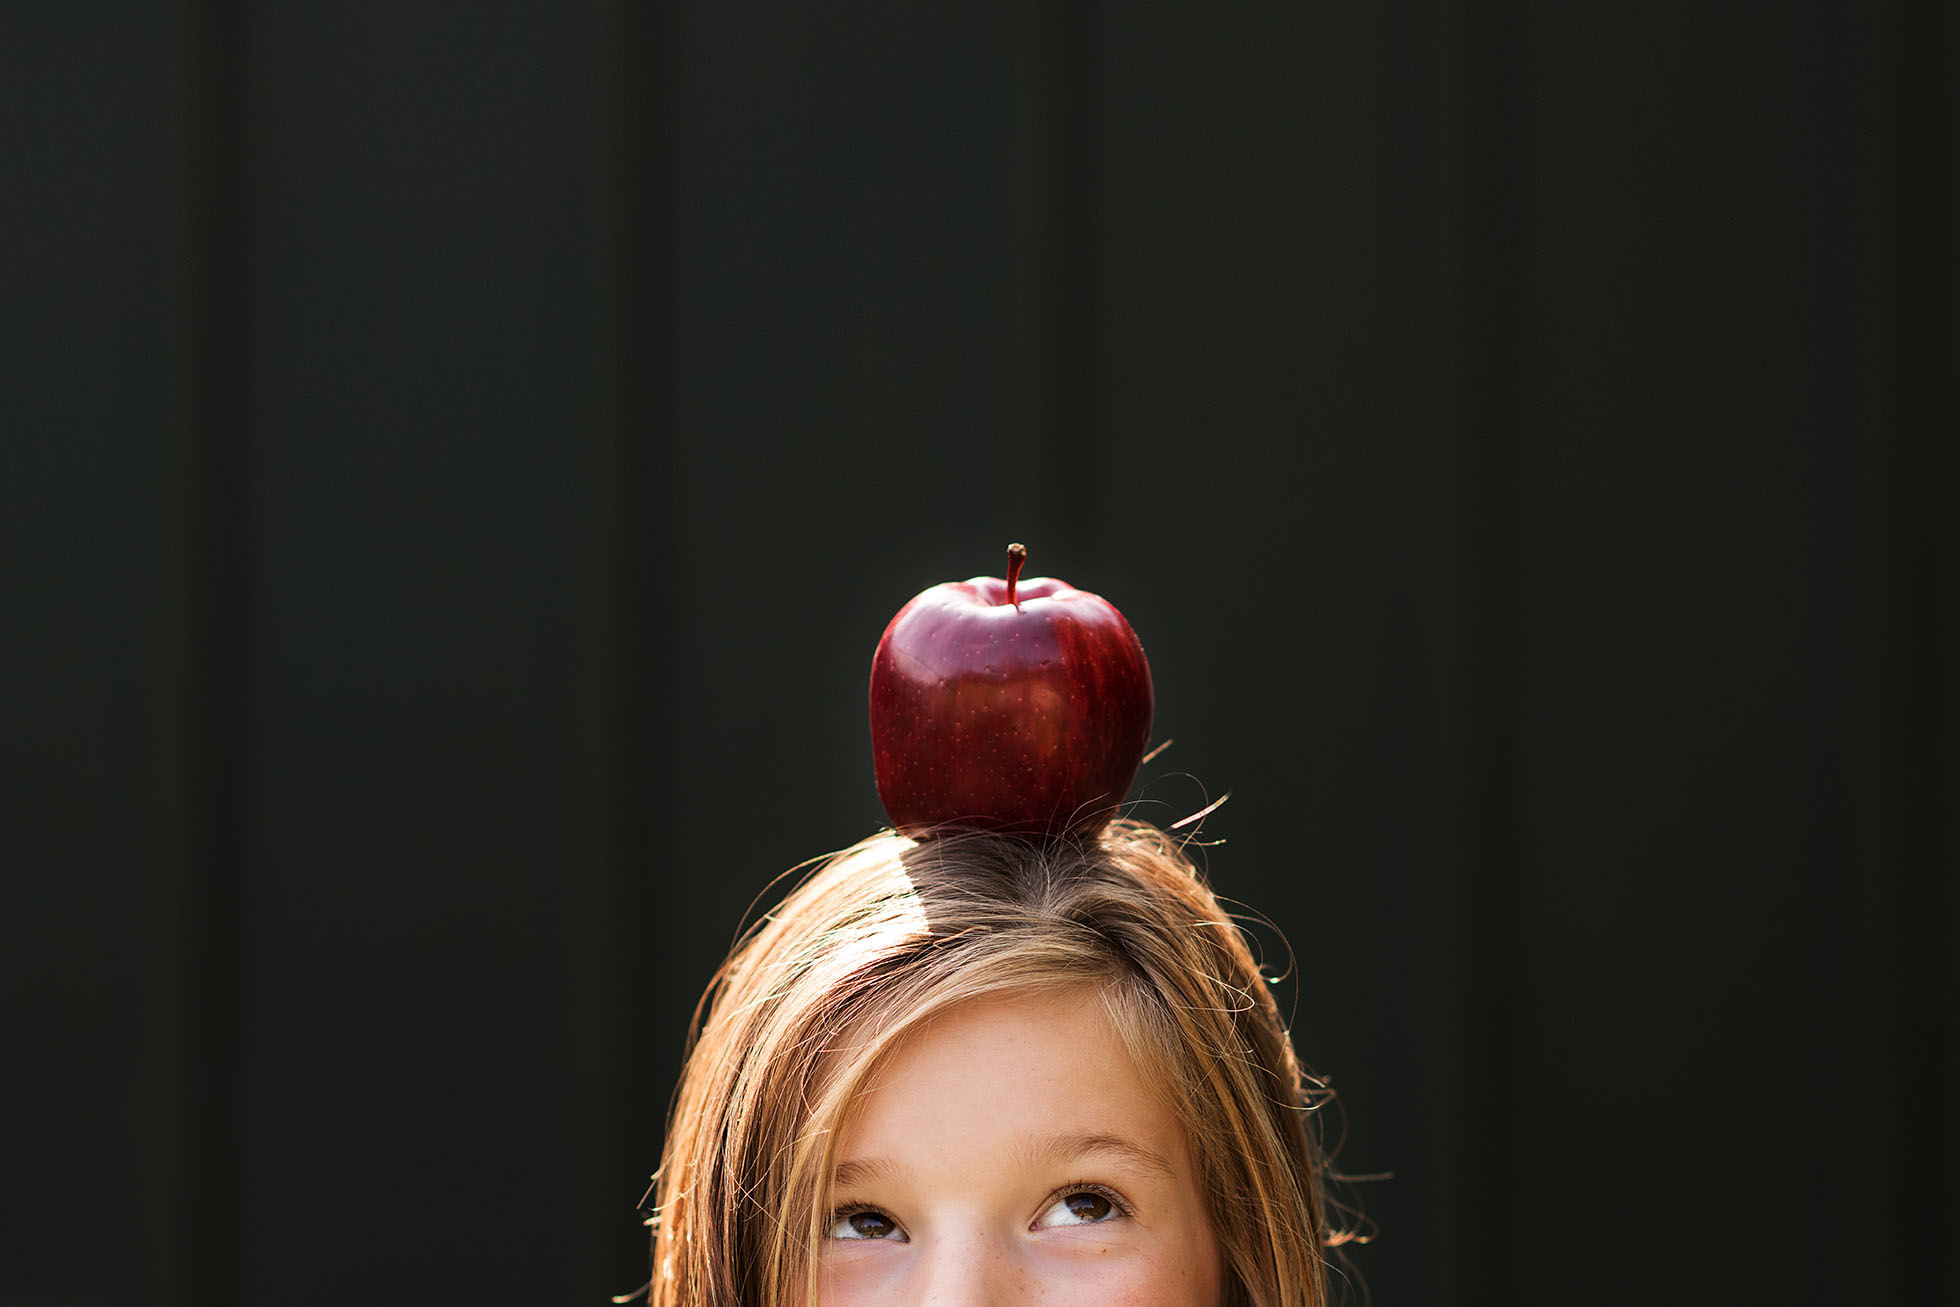 apple on head back to school photo kellie bieser cmblog